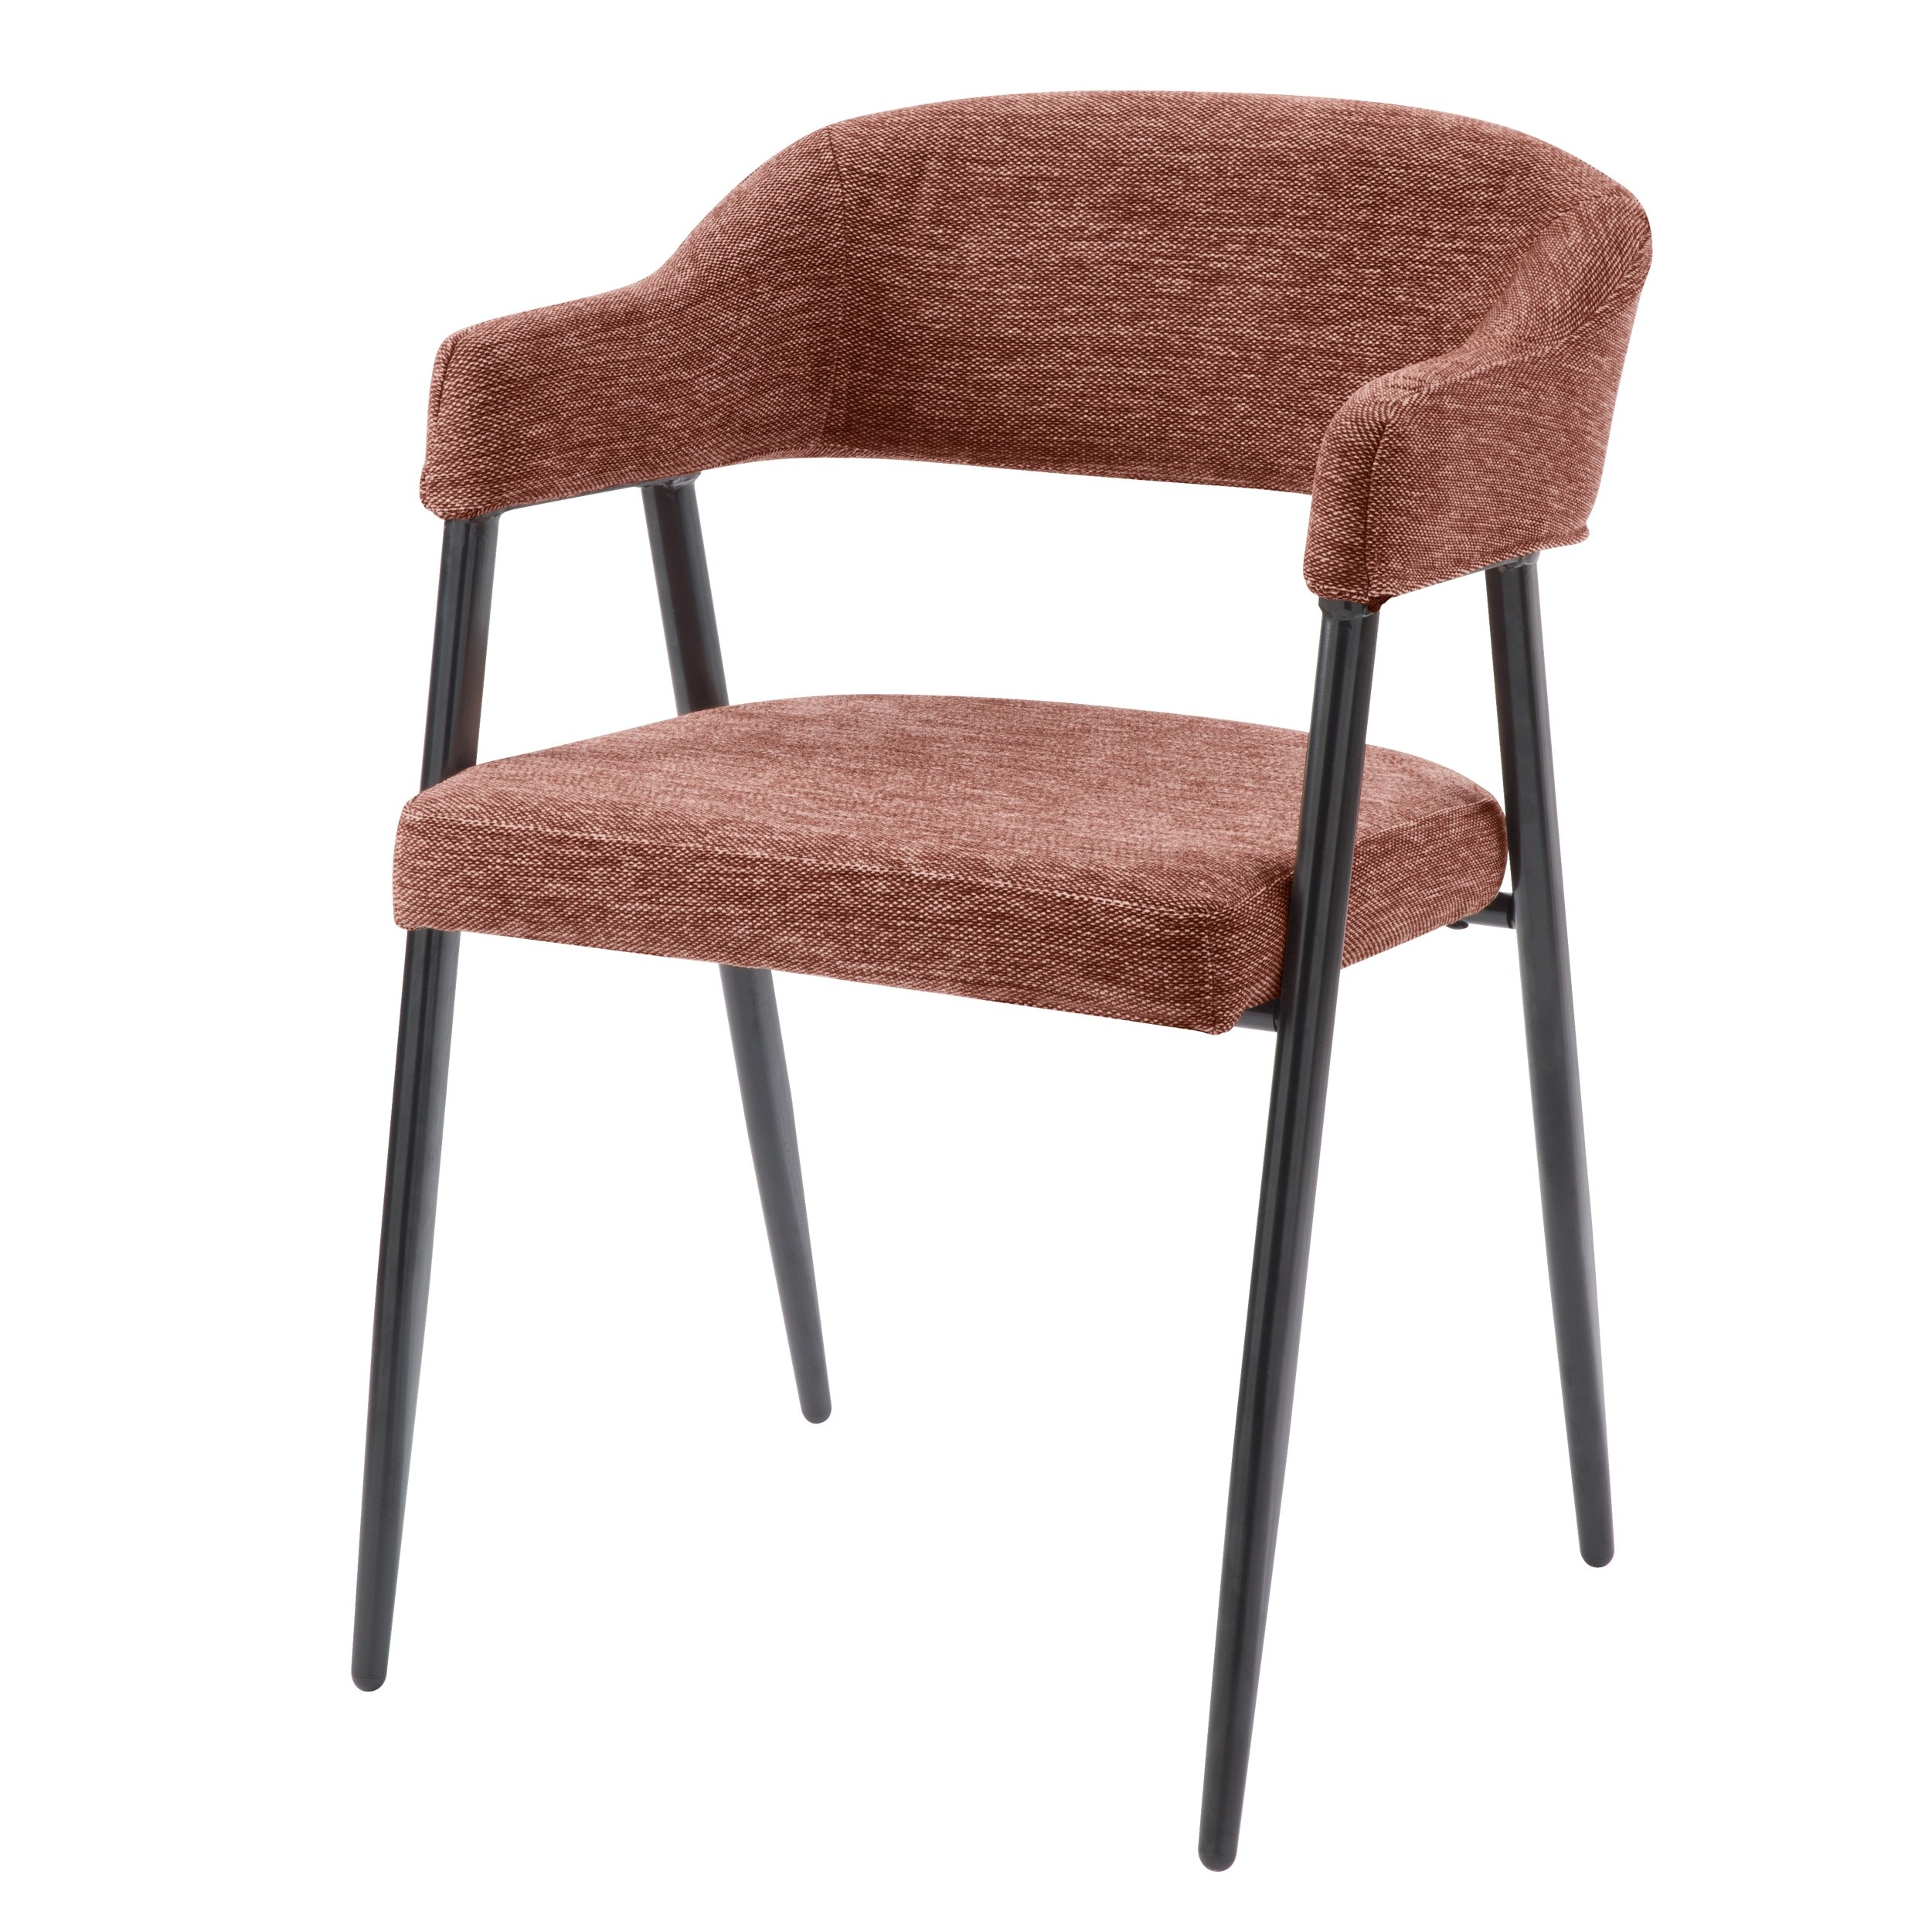 achat chaise assise tissu pieds metal